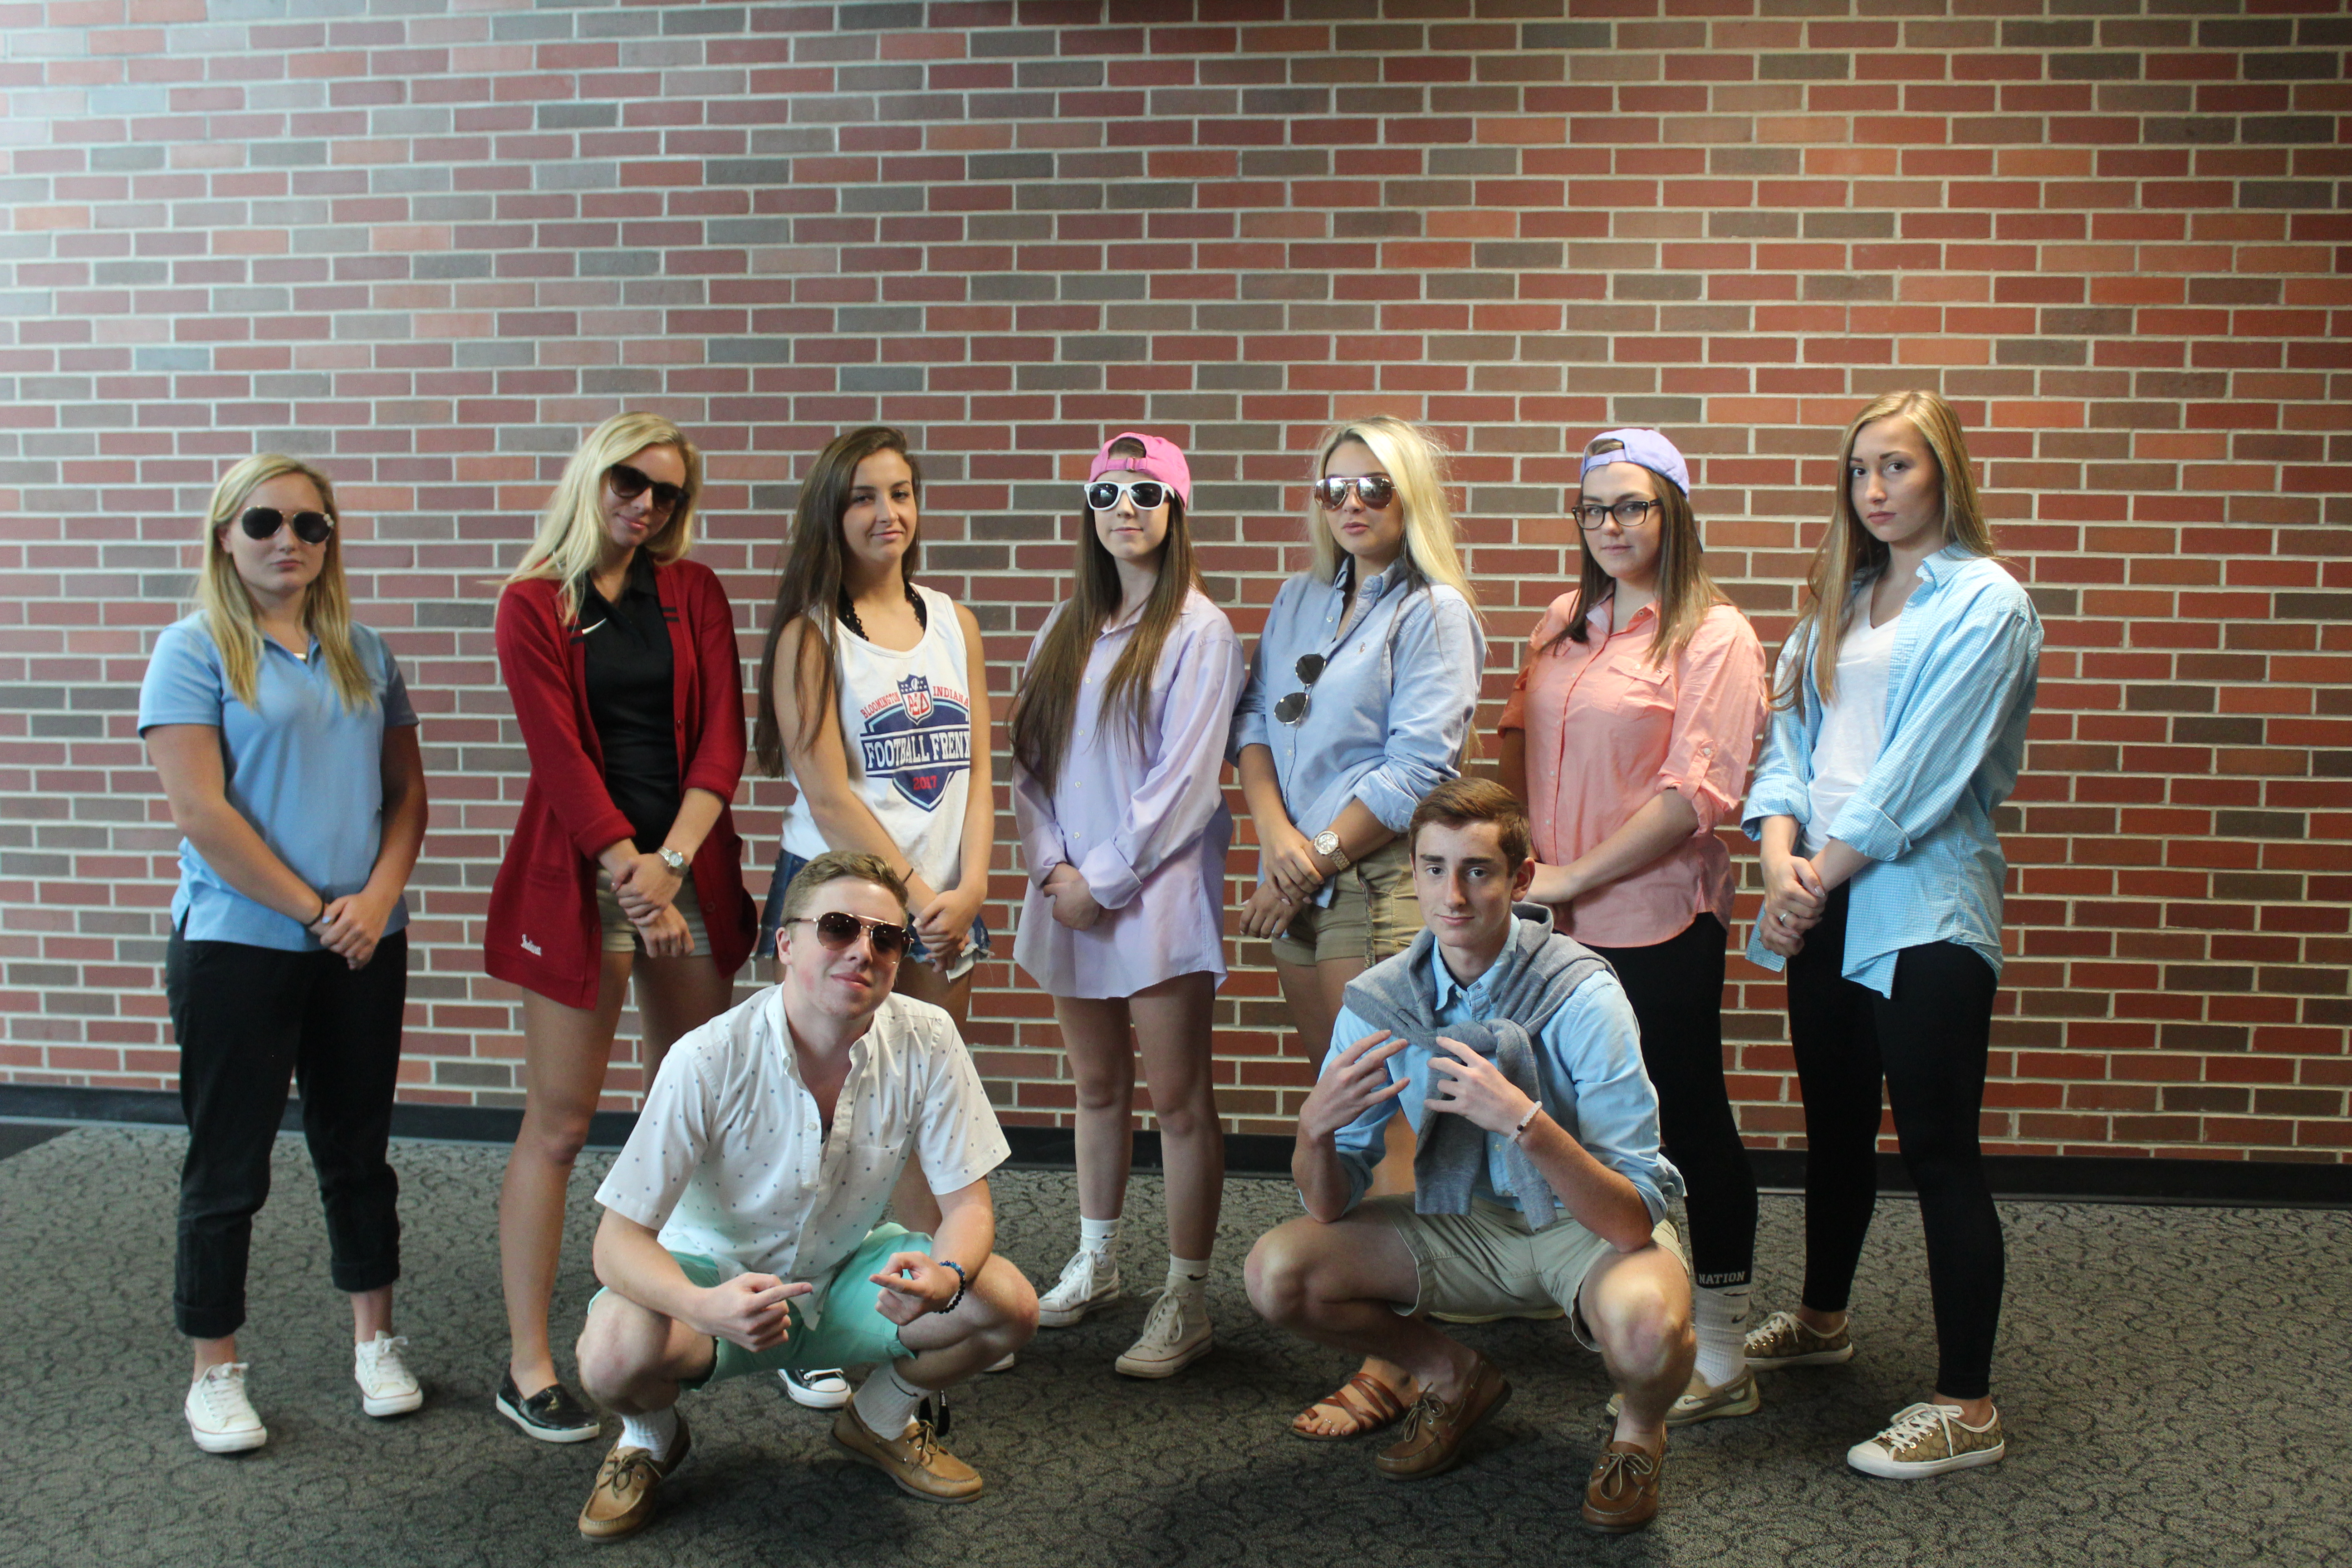 Bulldogs show out for spirit week   By//Lily Haag & Marley Wells